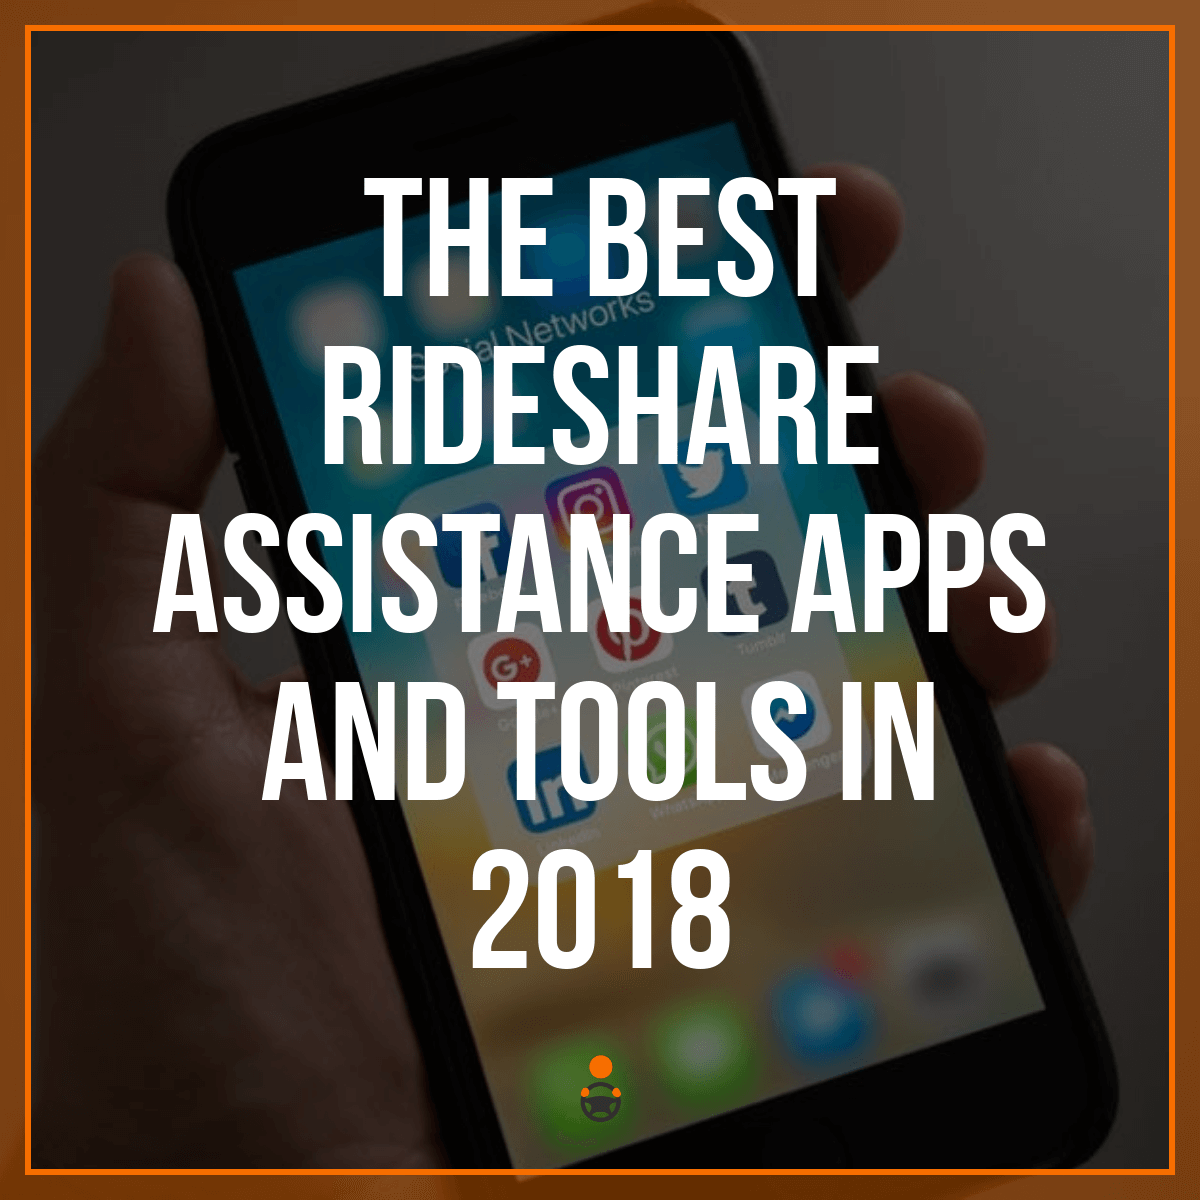 Best Rideshare Apps: Make Your Life Easier on the Road